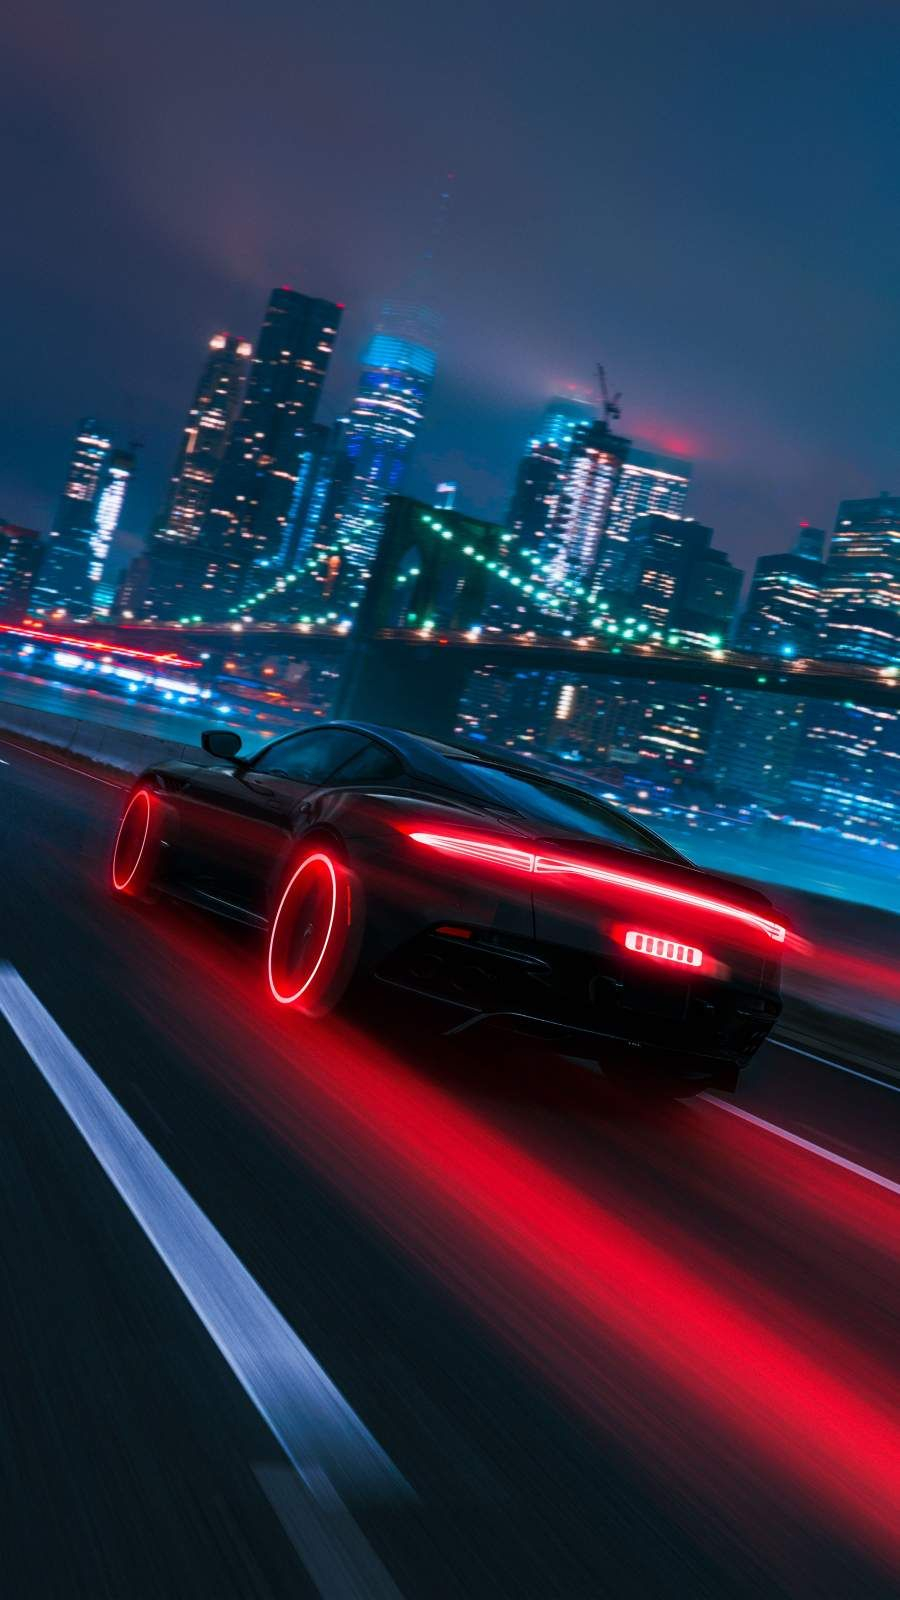 Neon City Fast Car iPhone Wallpaper iPhone Wallpapers